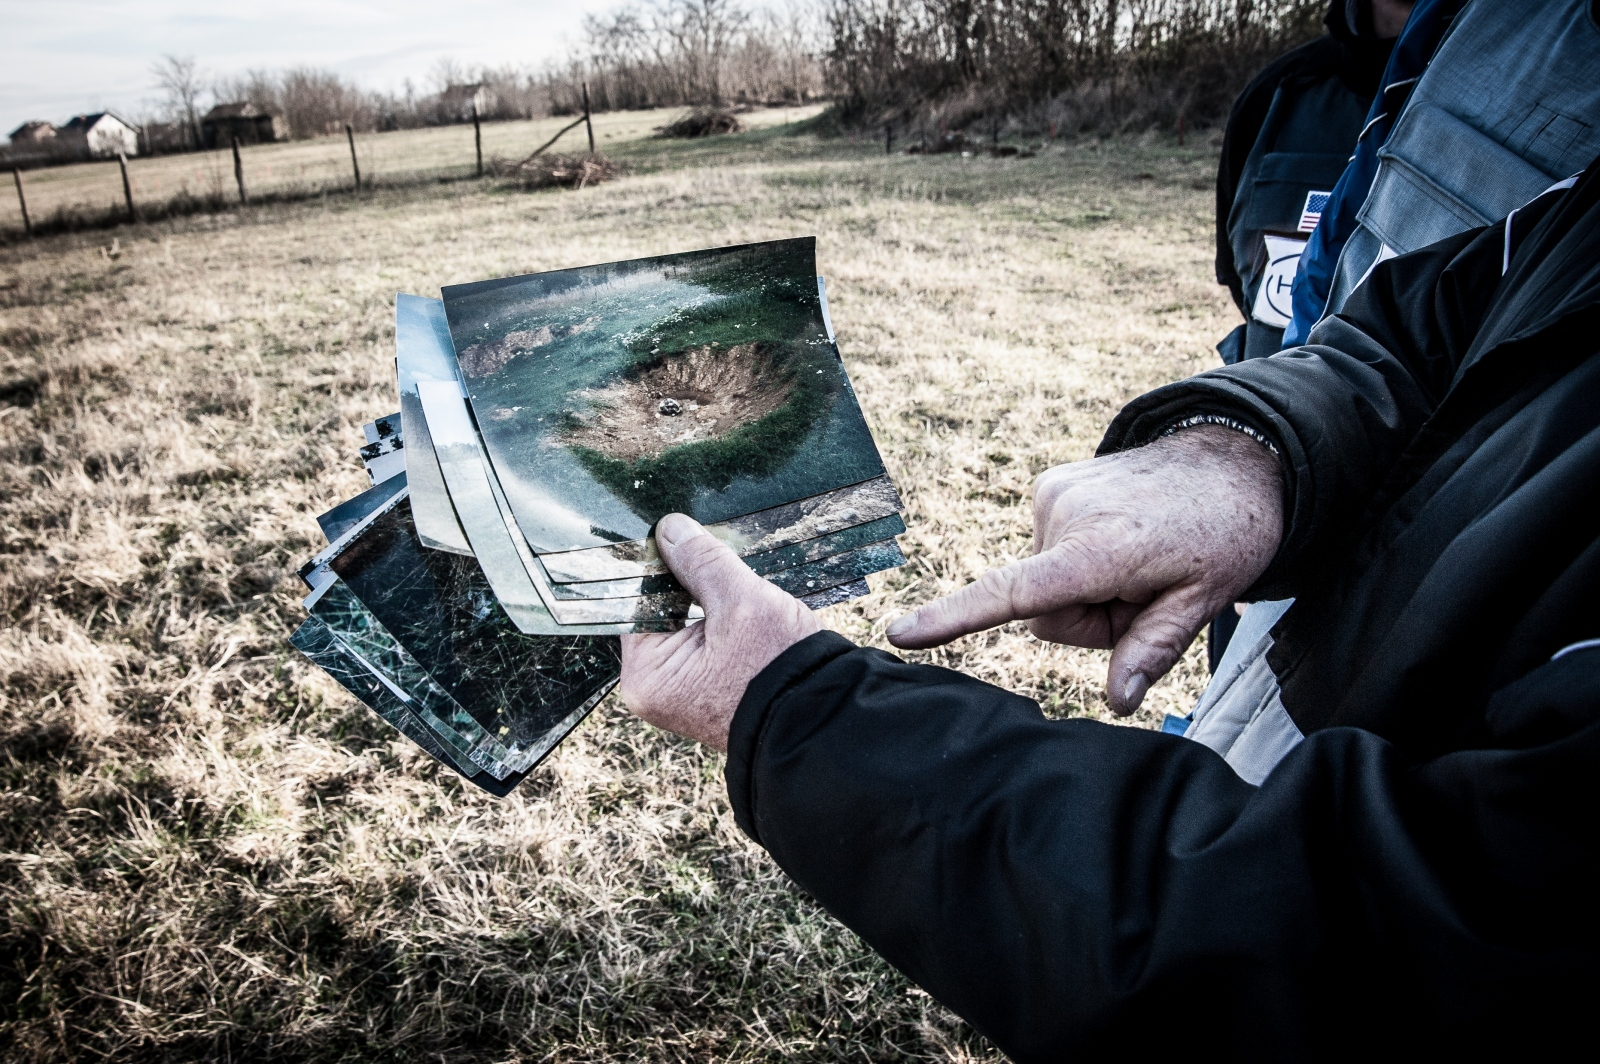 A famer shows some photographs of NATO bombing in 1999. All his crops of tomatoes, peppers and corn were destroyed. December 2016.